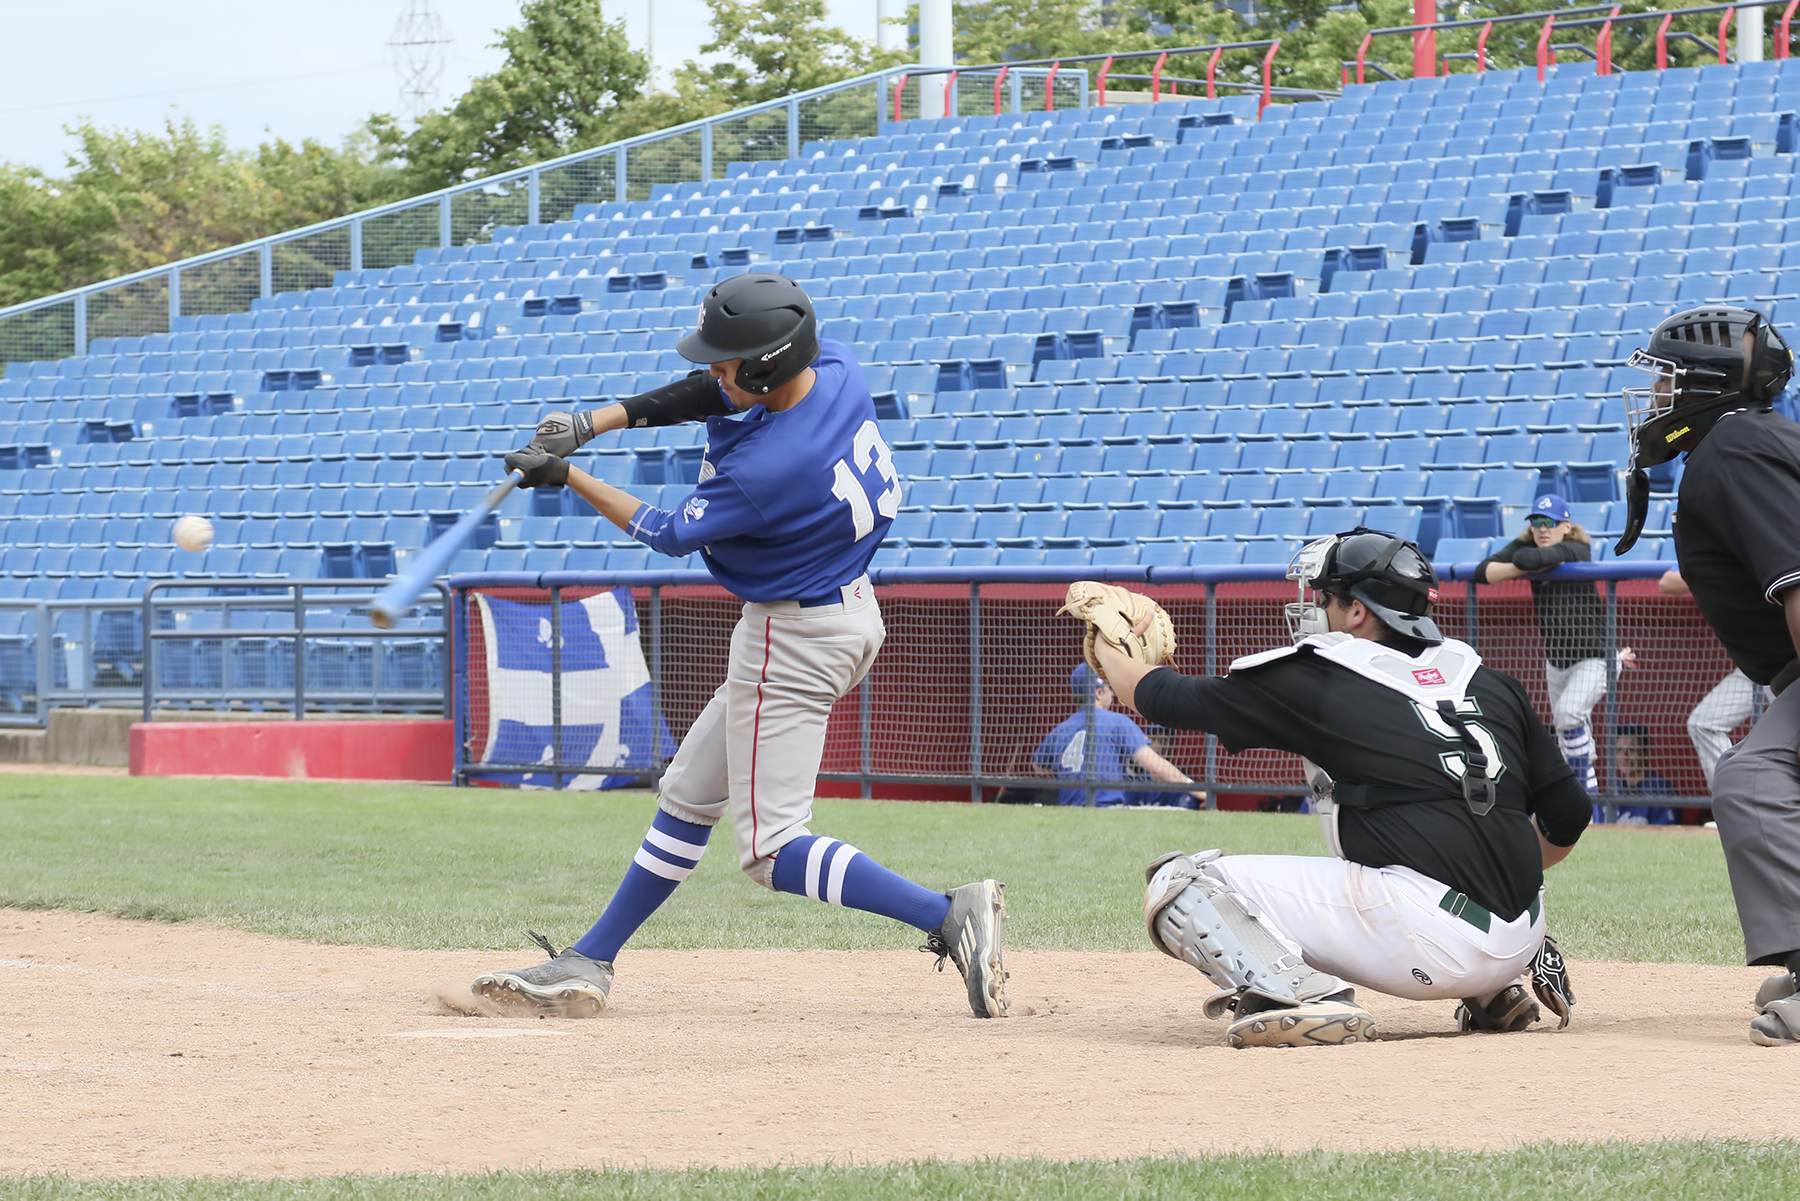 Baseball Canada Championships: Medal rounds set after edgy finish to round robin